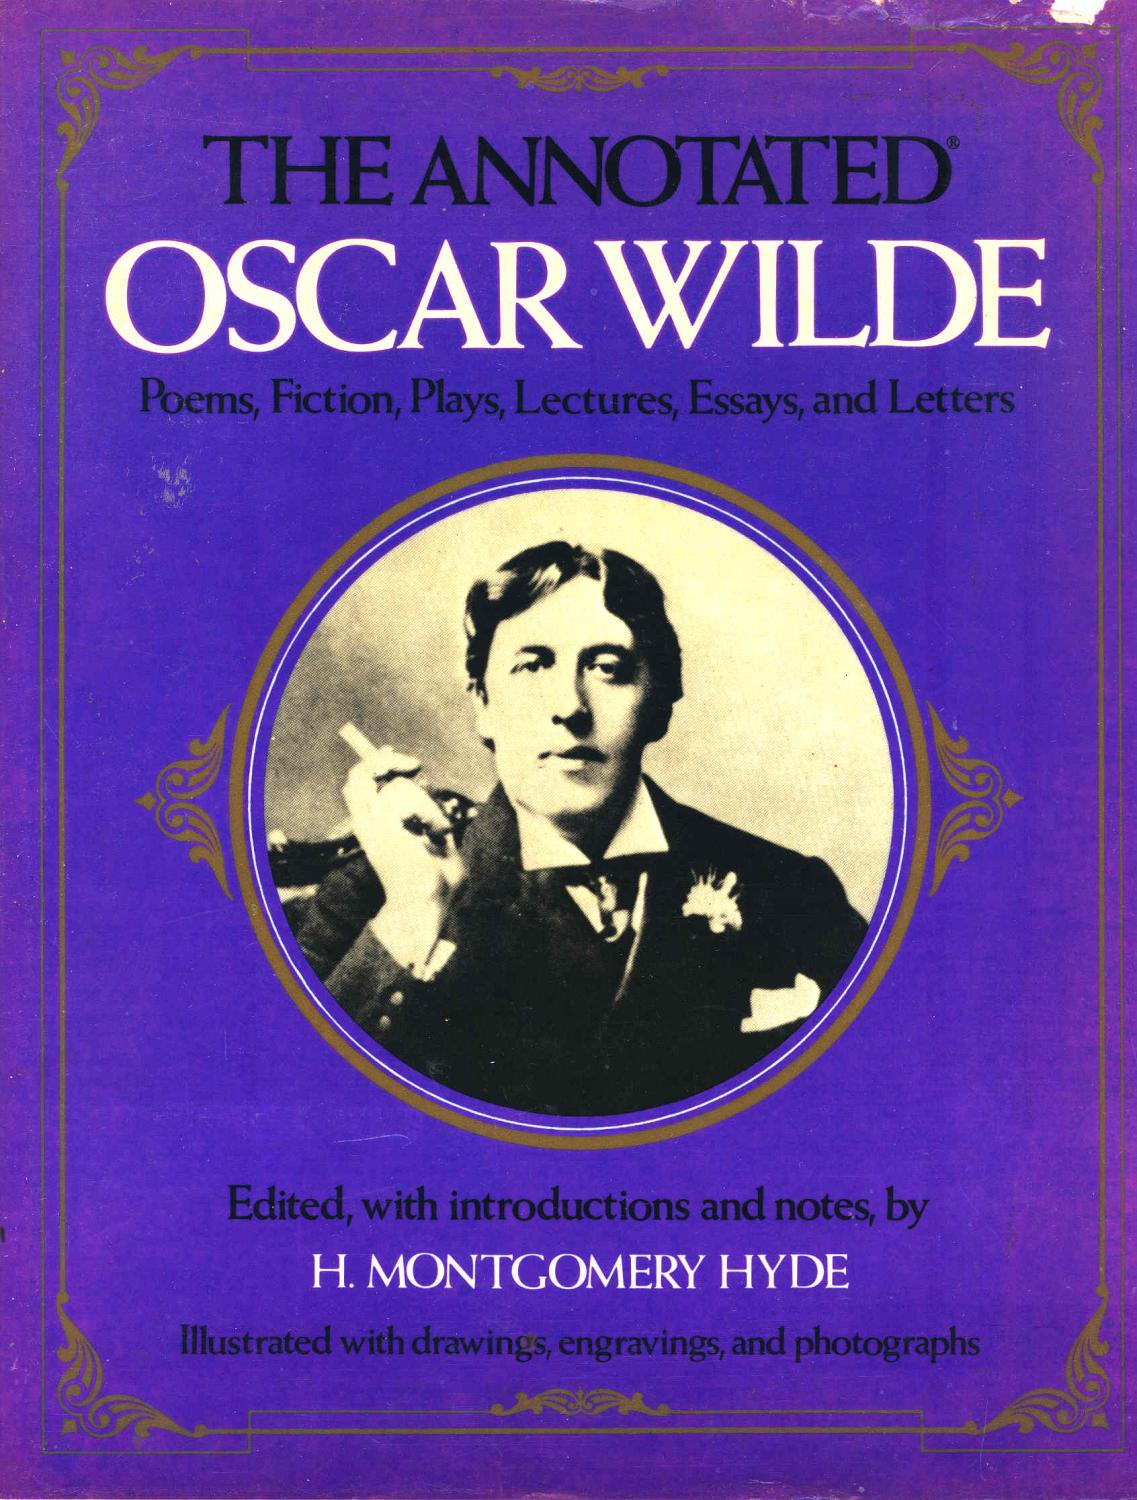 satire used in oscar wildes play